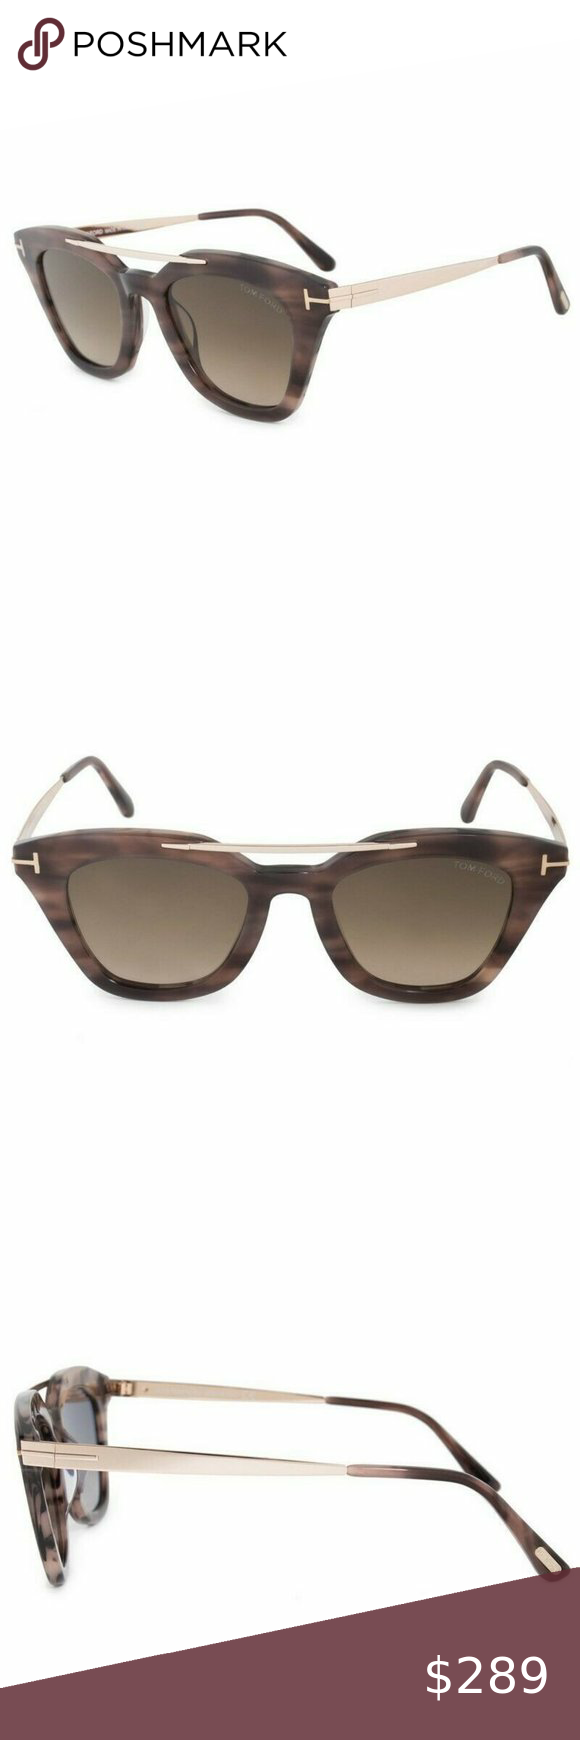 Tom Ford Ft 0575 55k 49 Sunglasses Tom Ford Sunglasses Tom Ford Ford Accessories